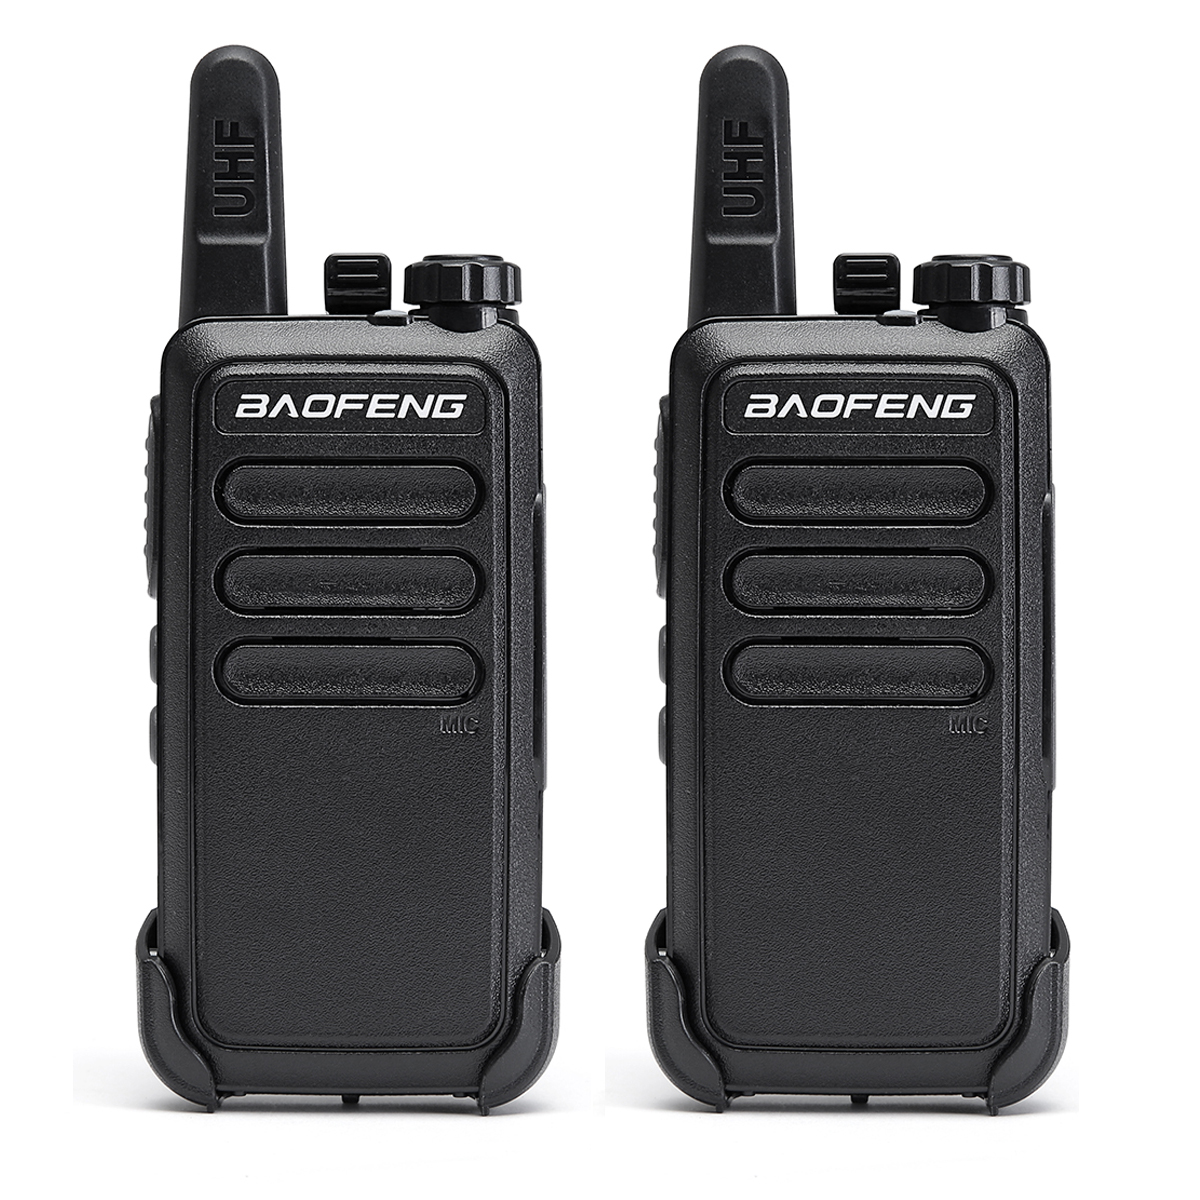 2 Pcs Baofeng BF C9 Portable Radio Mini Walkie Talkie 400 470MHz UHF VOX USB Charging Handheld Two Way Ham Radio CommunicatorWalkie Talkie   -